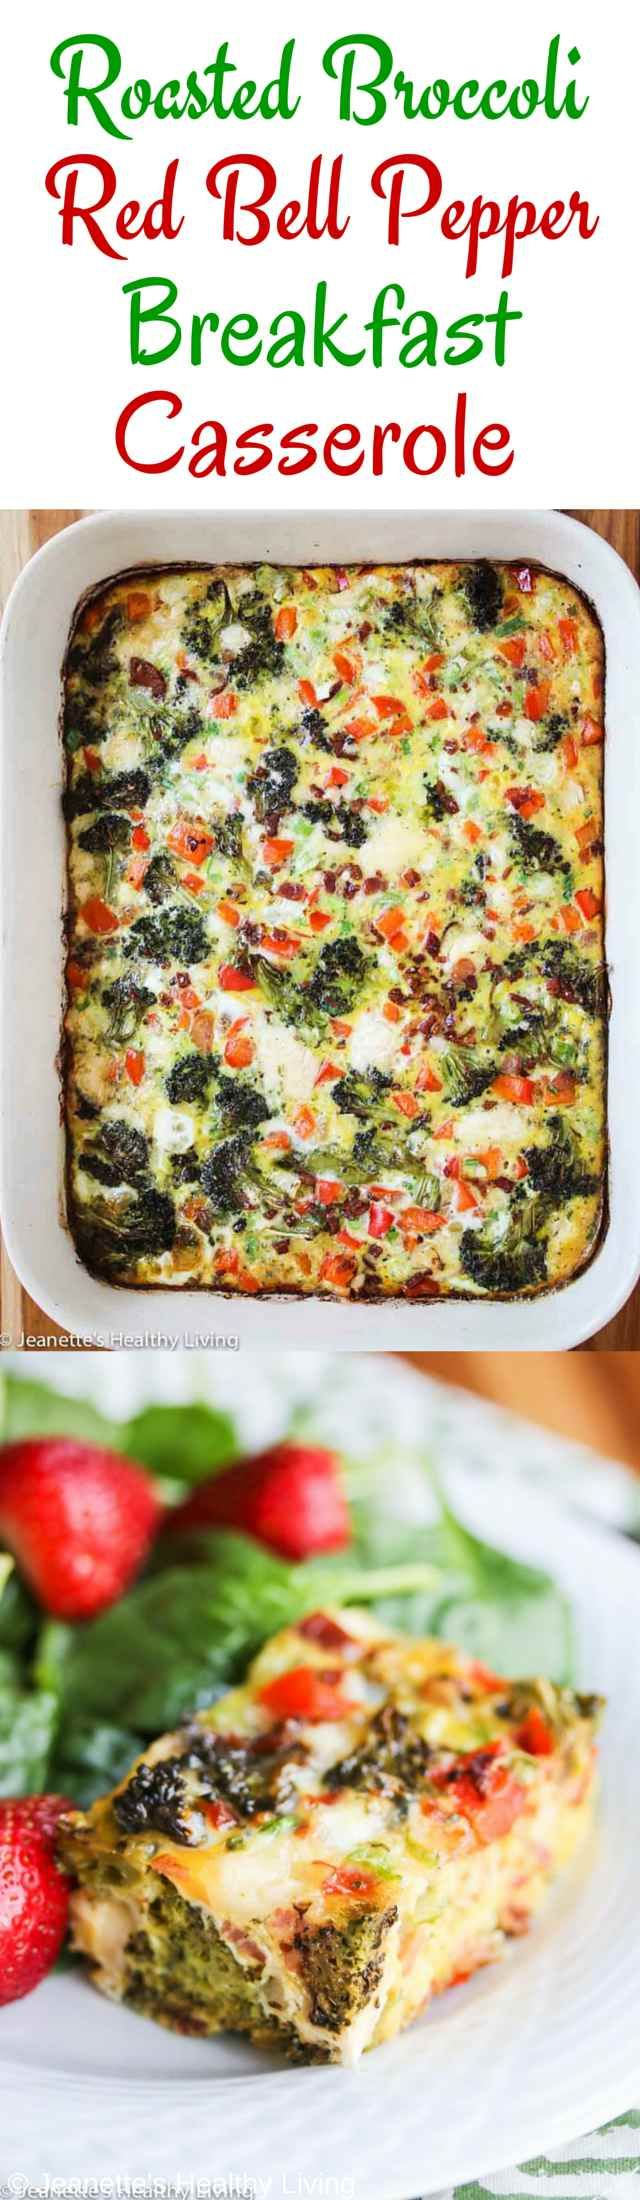 Roasted Broccoli Red Pepper Breakfast Casserole - great for a crowd at brunch! ~ http://jeanetteshealthyliving.com